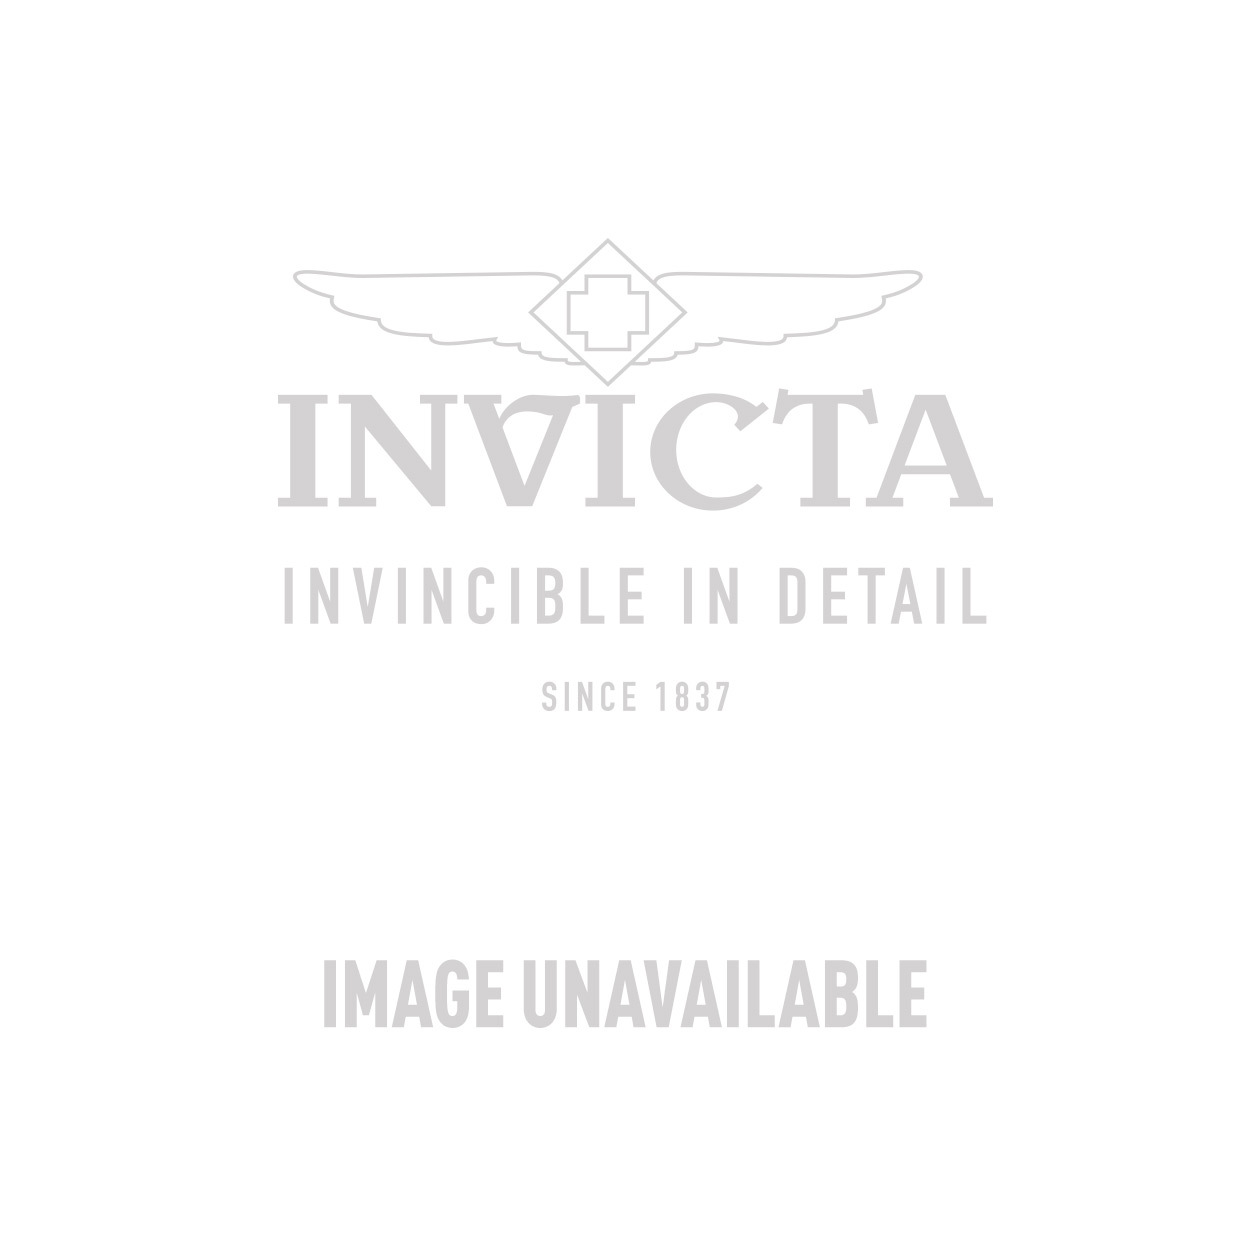 Invicta Pro Diver Quartz Watch - Stainless Steel case Stainless Steel band - Model 15077